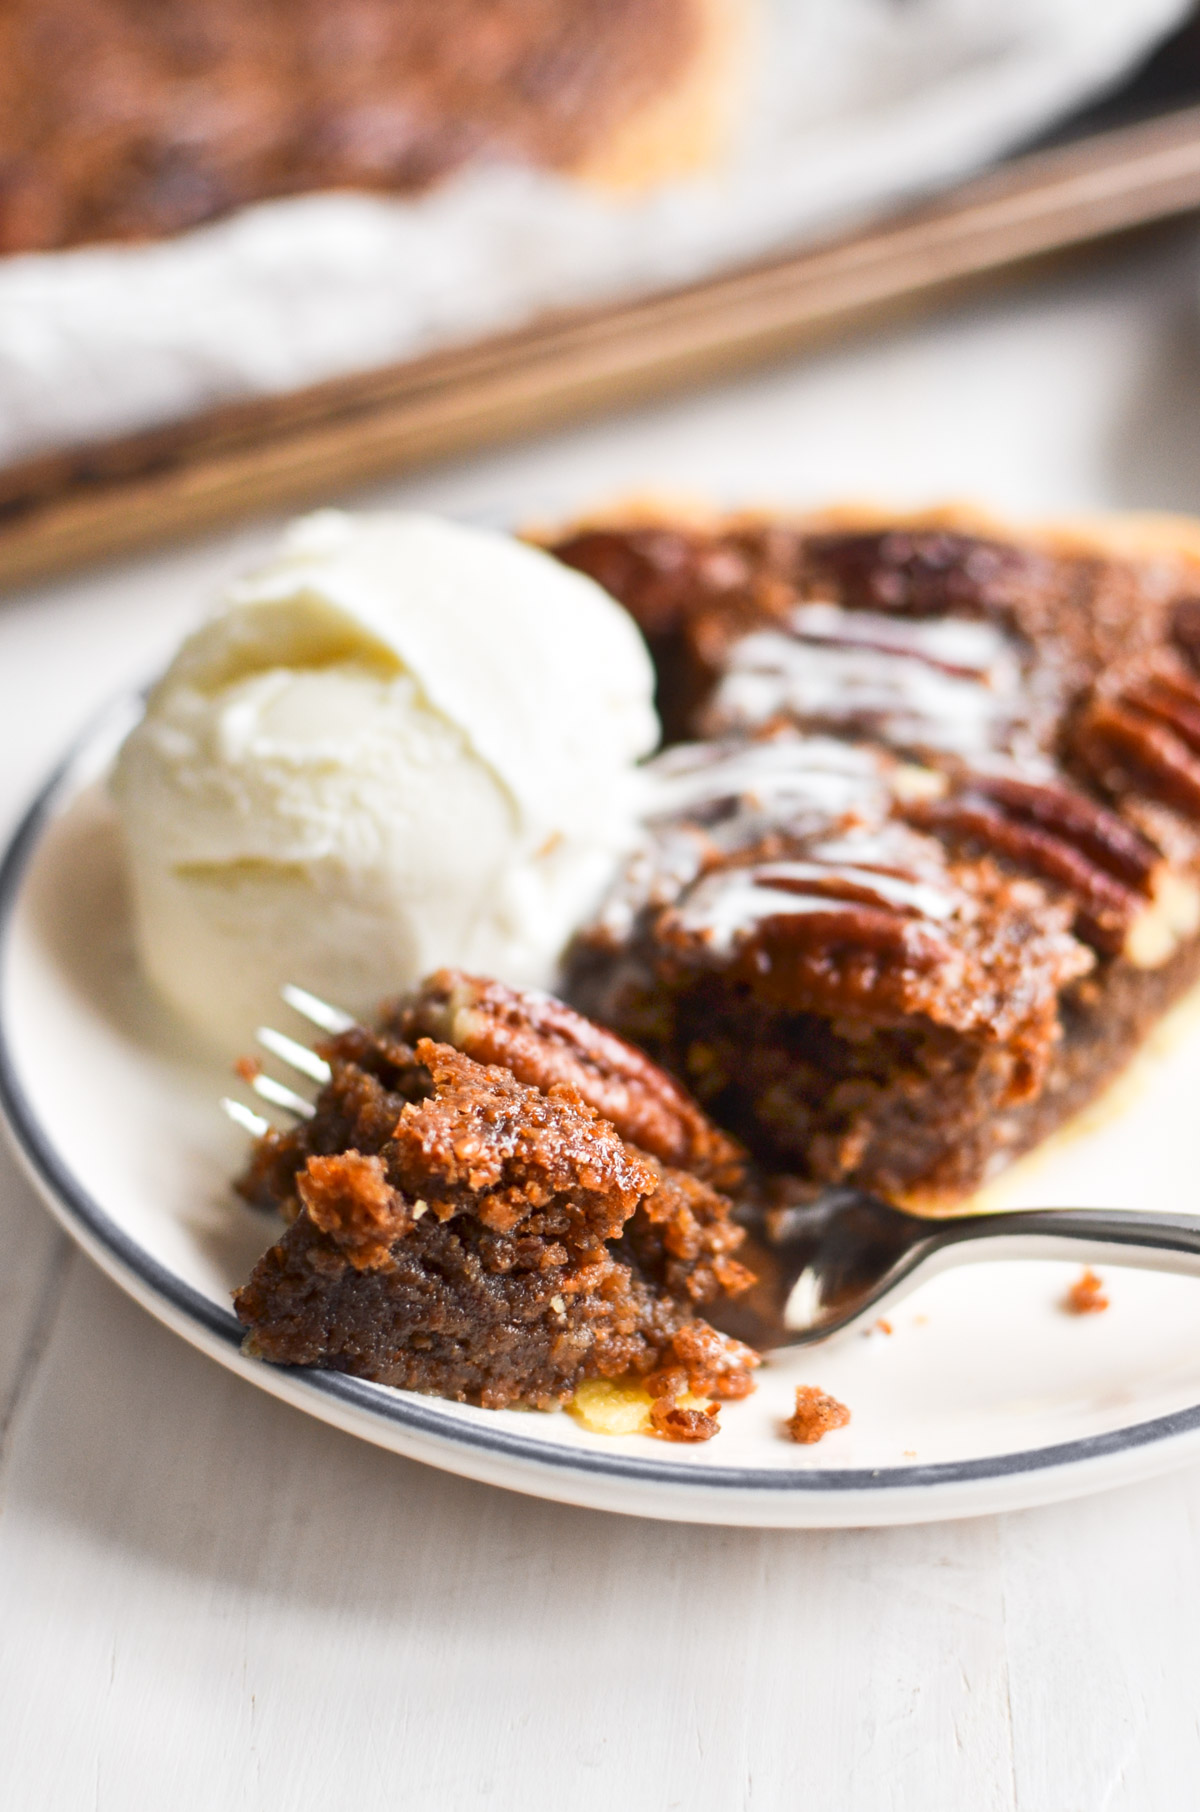 a slice of maple frangipane pecan pie with ice cream